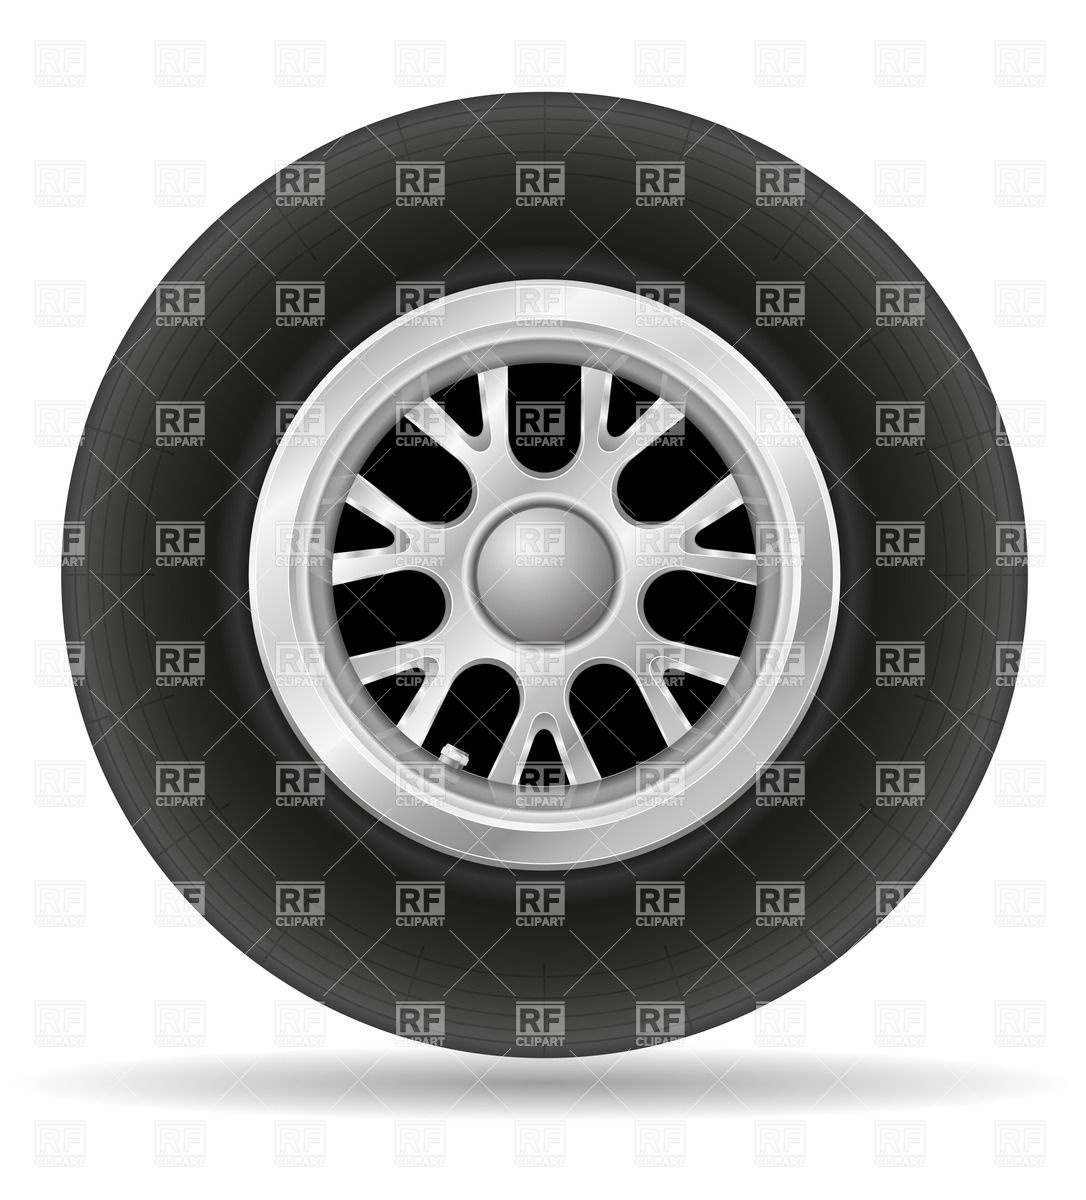 Alloy wheel of racing car Vector Image #38334.